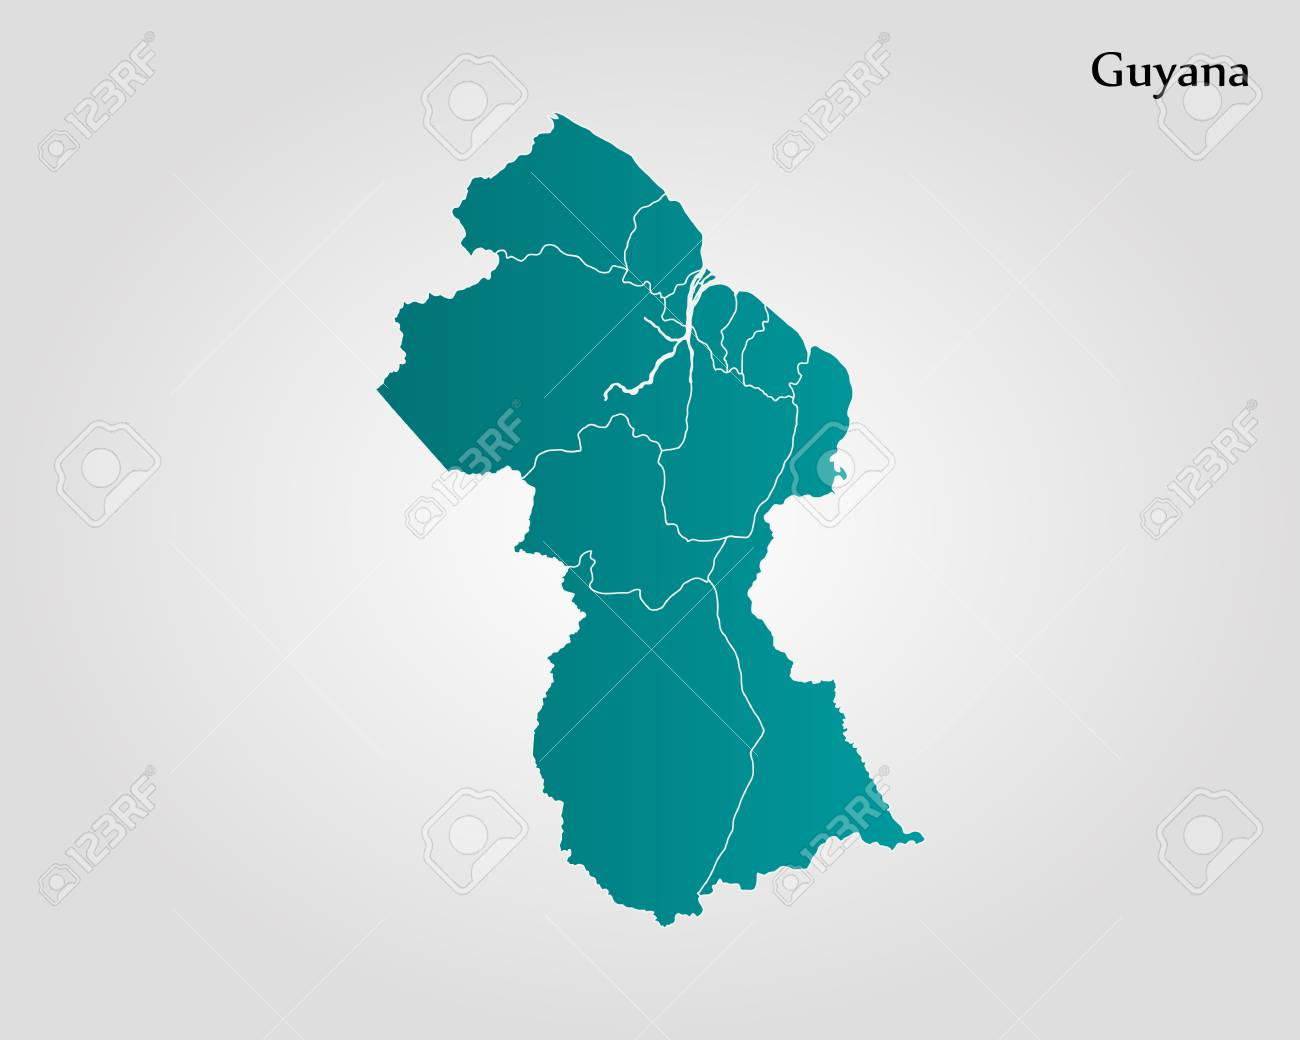 Guyana Location On World Map.Map Of Guyana Vector Illustration World Map Royalty Free Cliparts